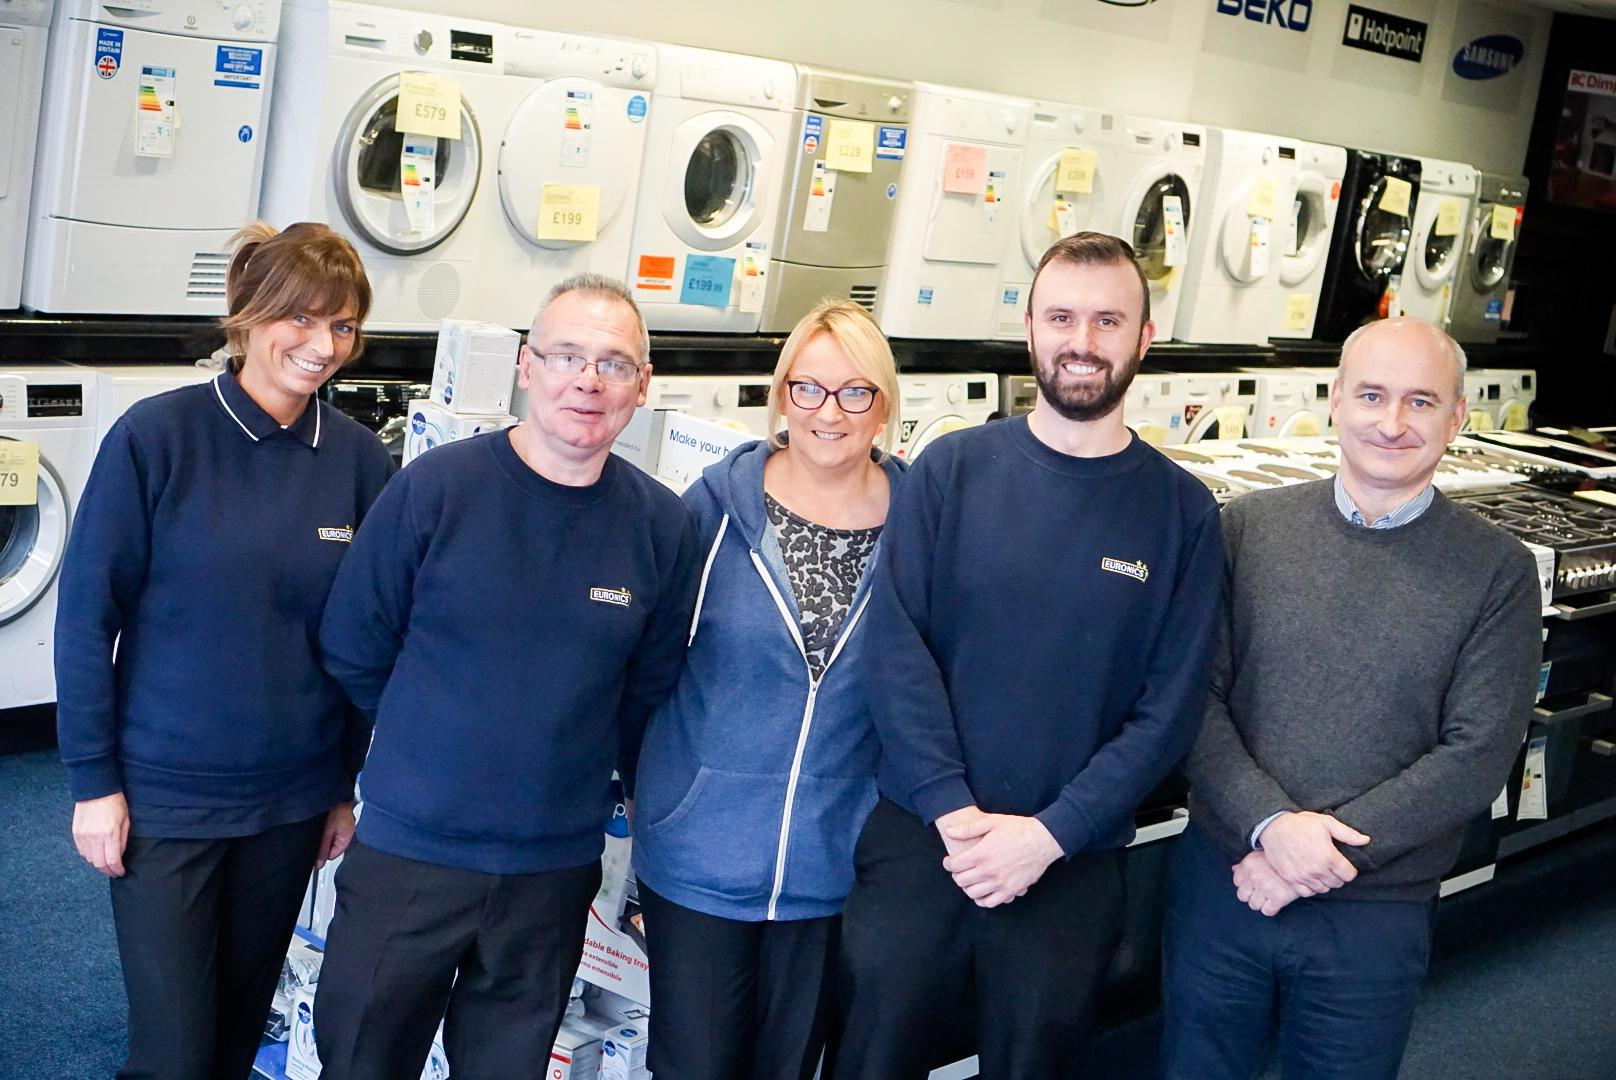 Our sales staff are ready to help you pick the best appliance for your needs